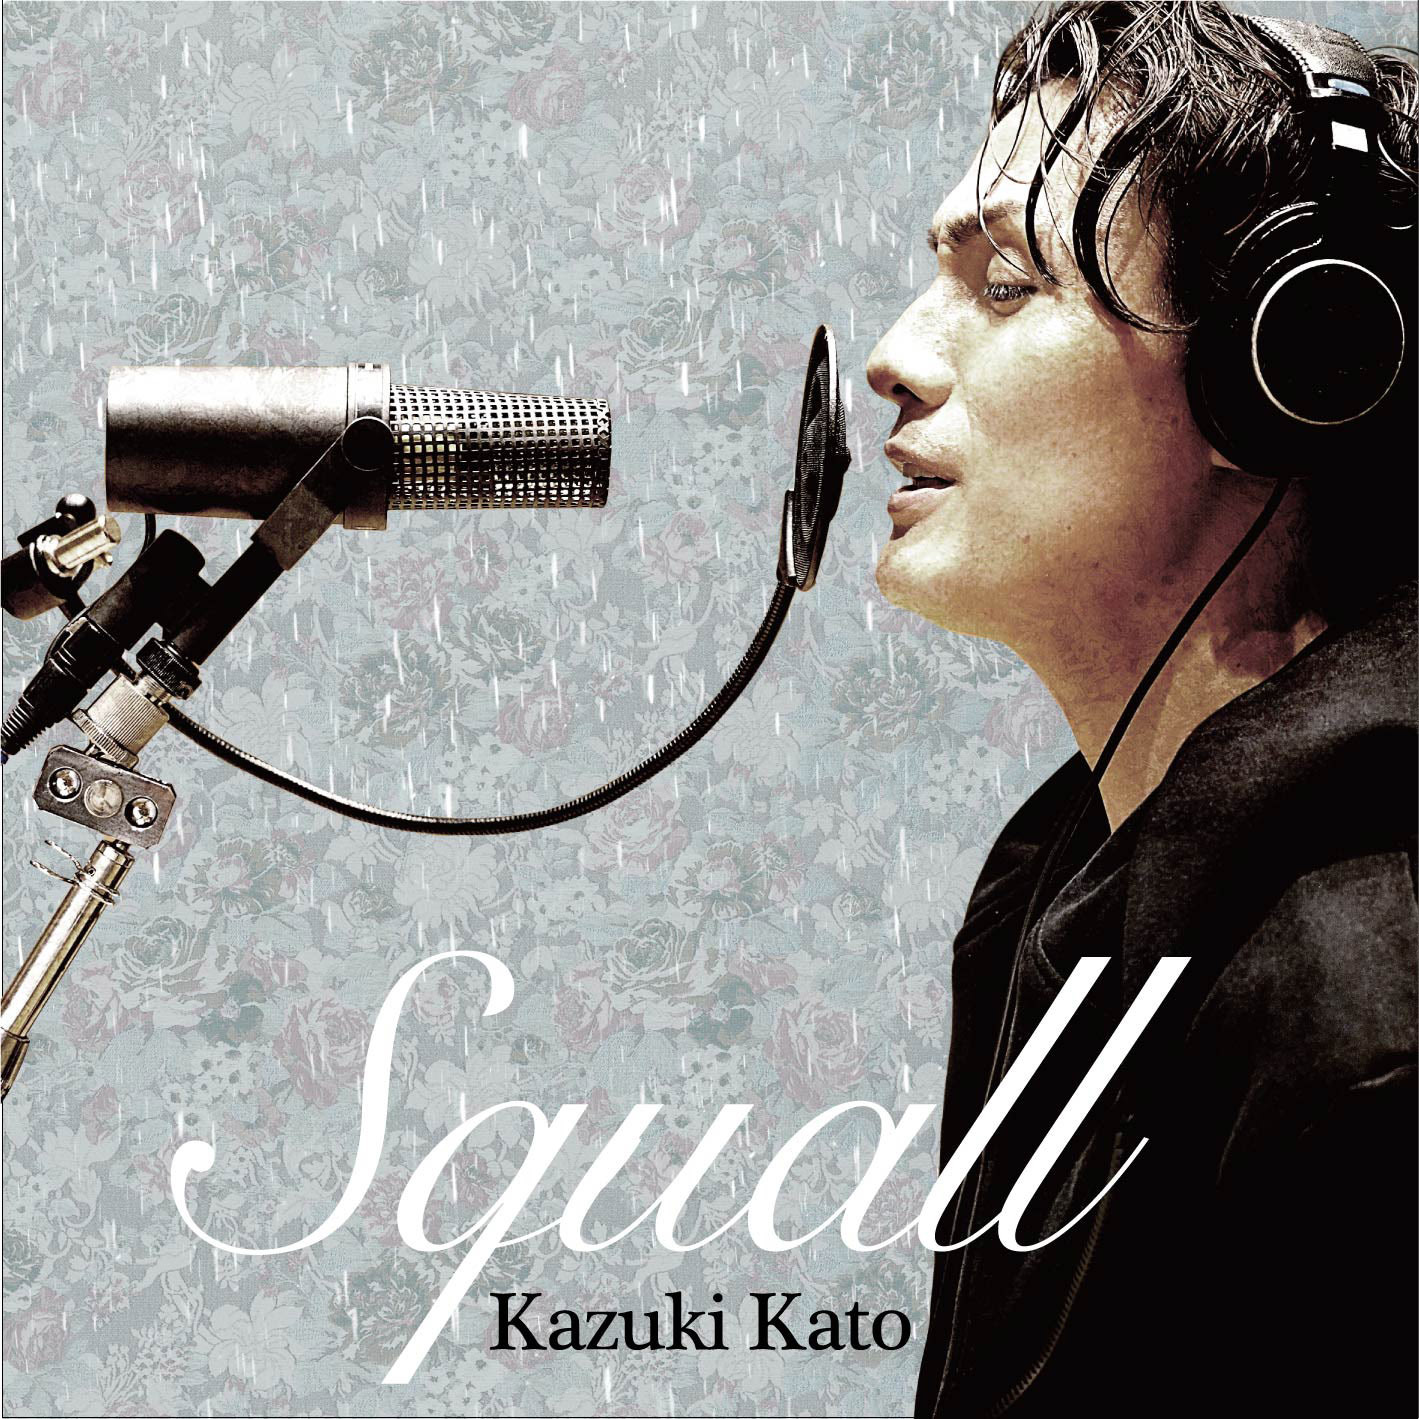 「Squall」